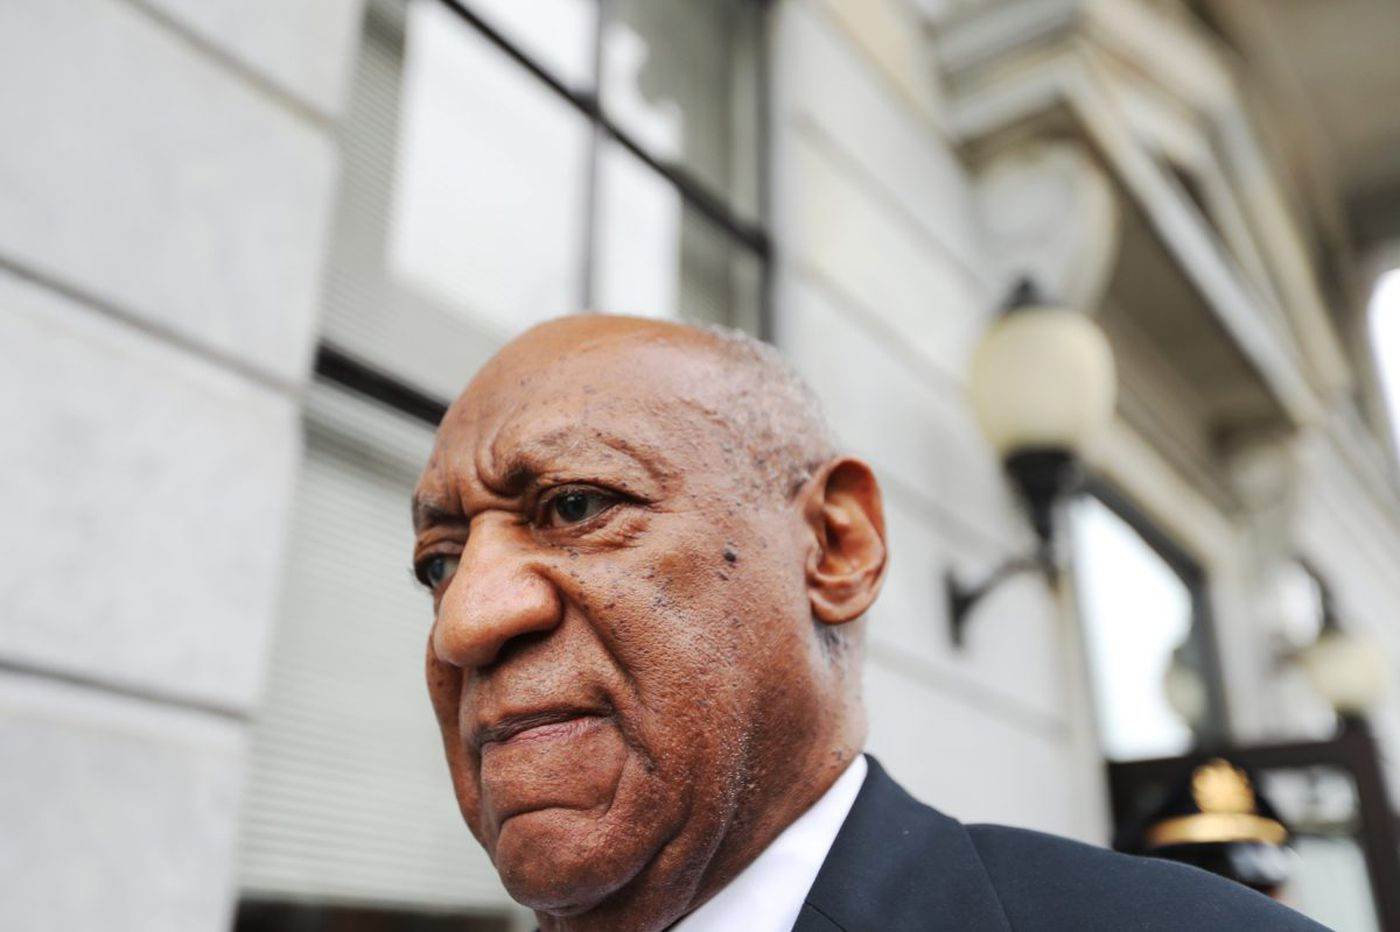 Who recorded and posted video of Cosby courtroom?